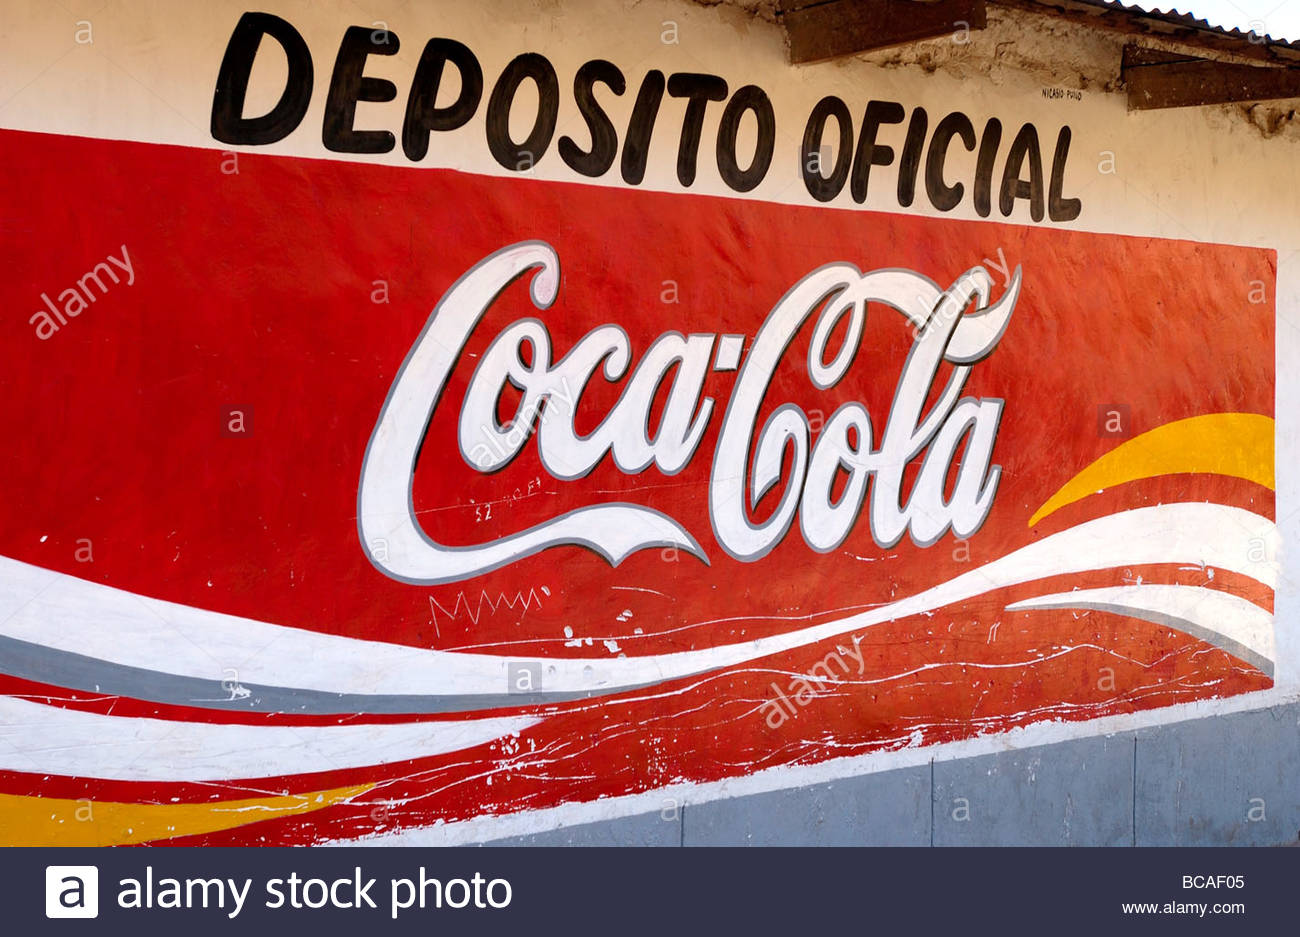 peru coca cola advertisment stock photo 24817525 alamy